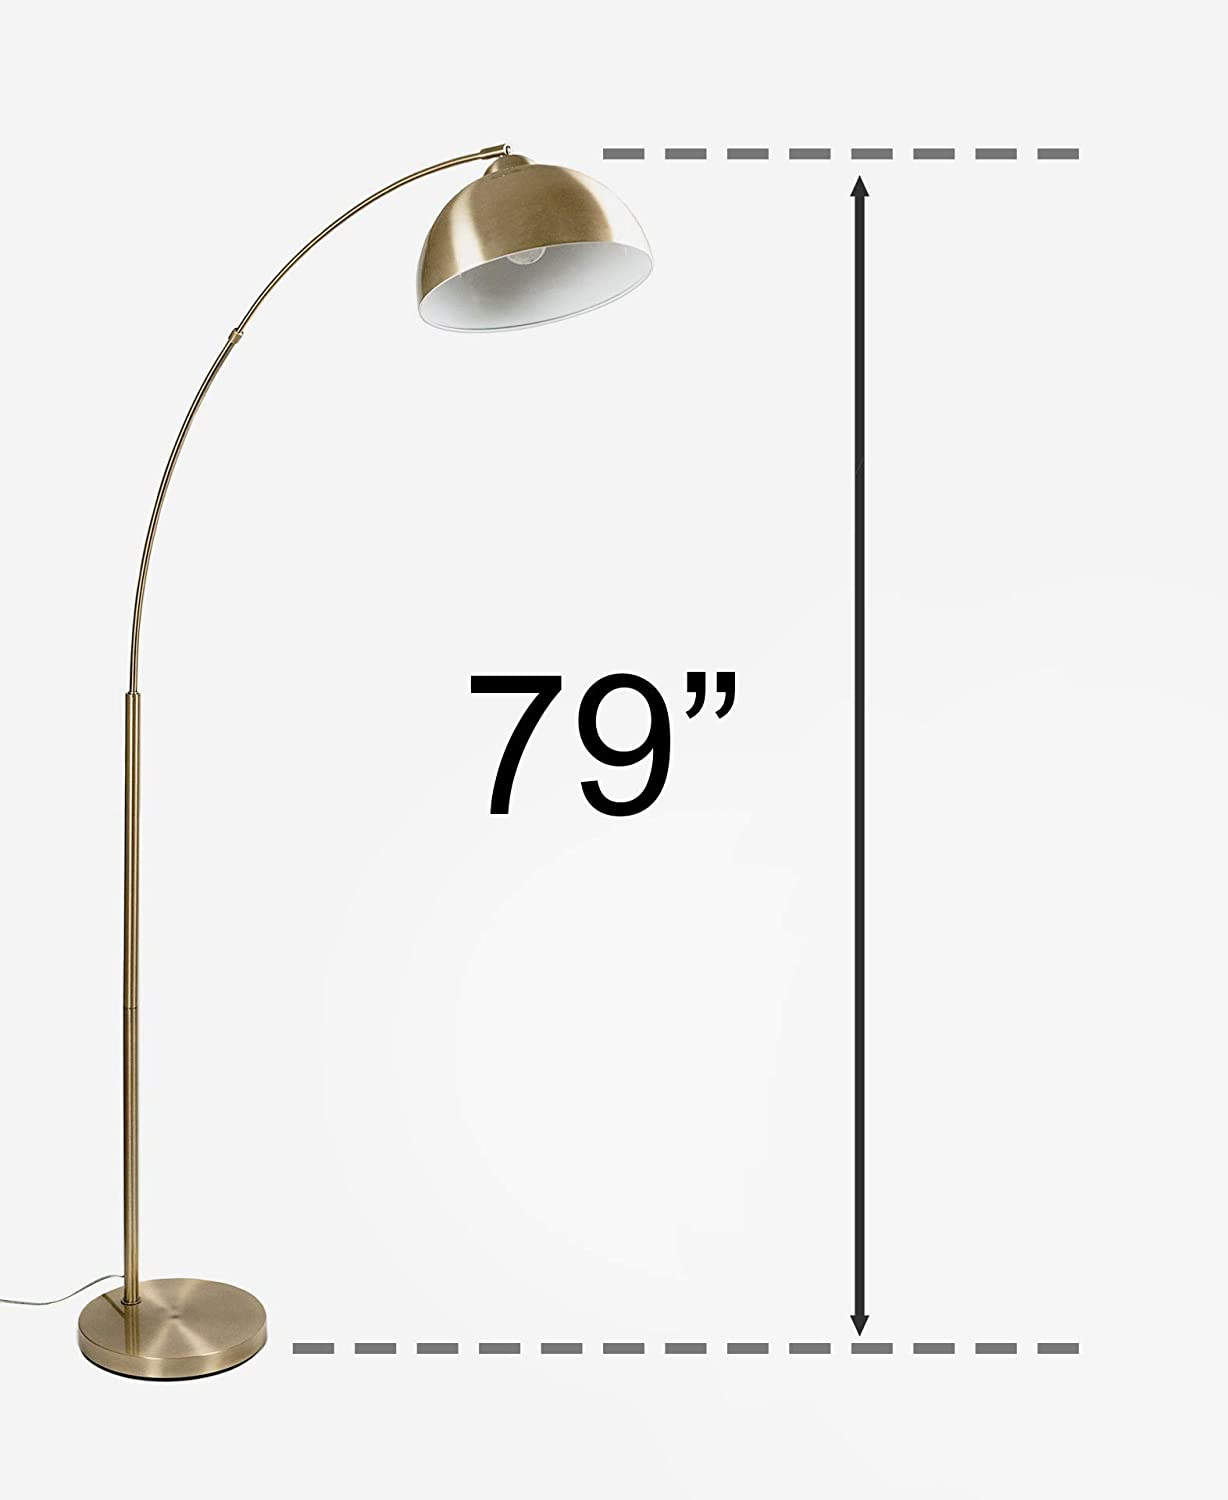 Sand Black Steel Floor Lamp with Rose Gold Shade Archioloby Venice Series 63